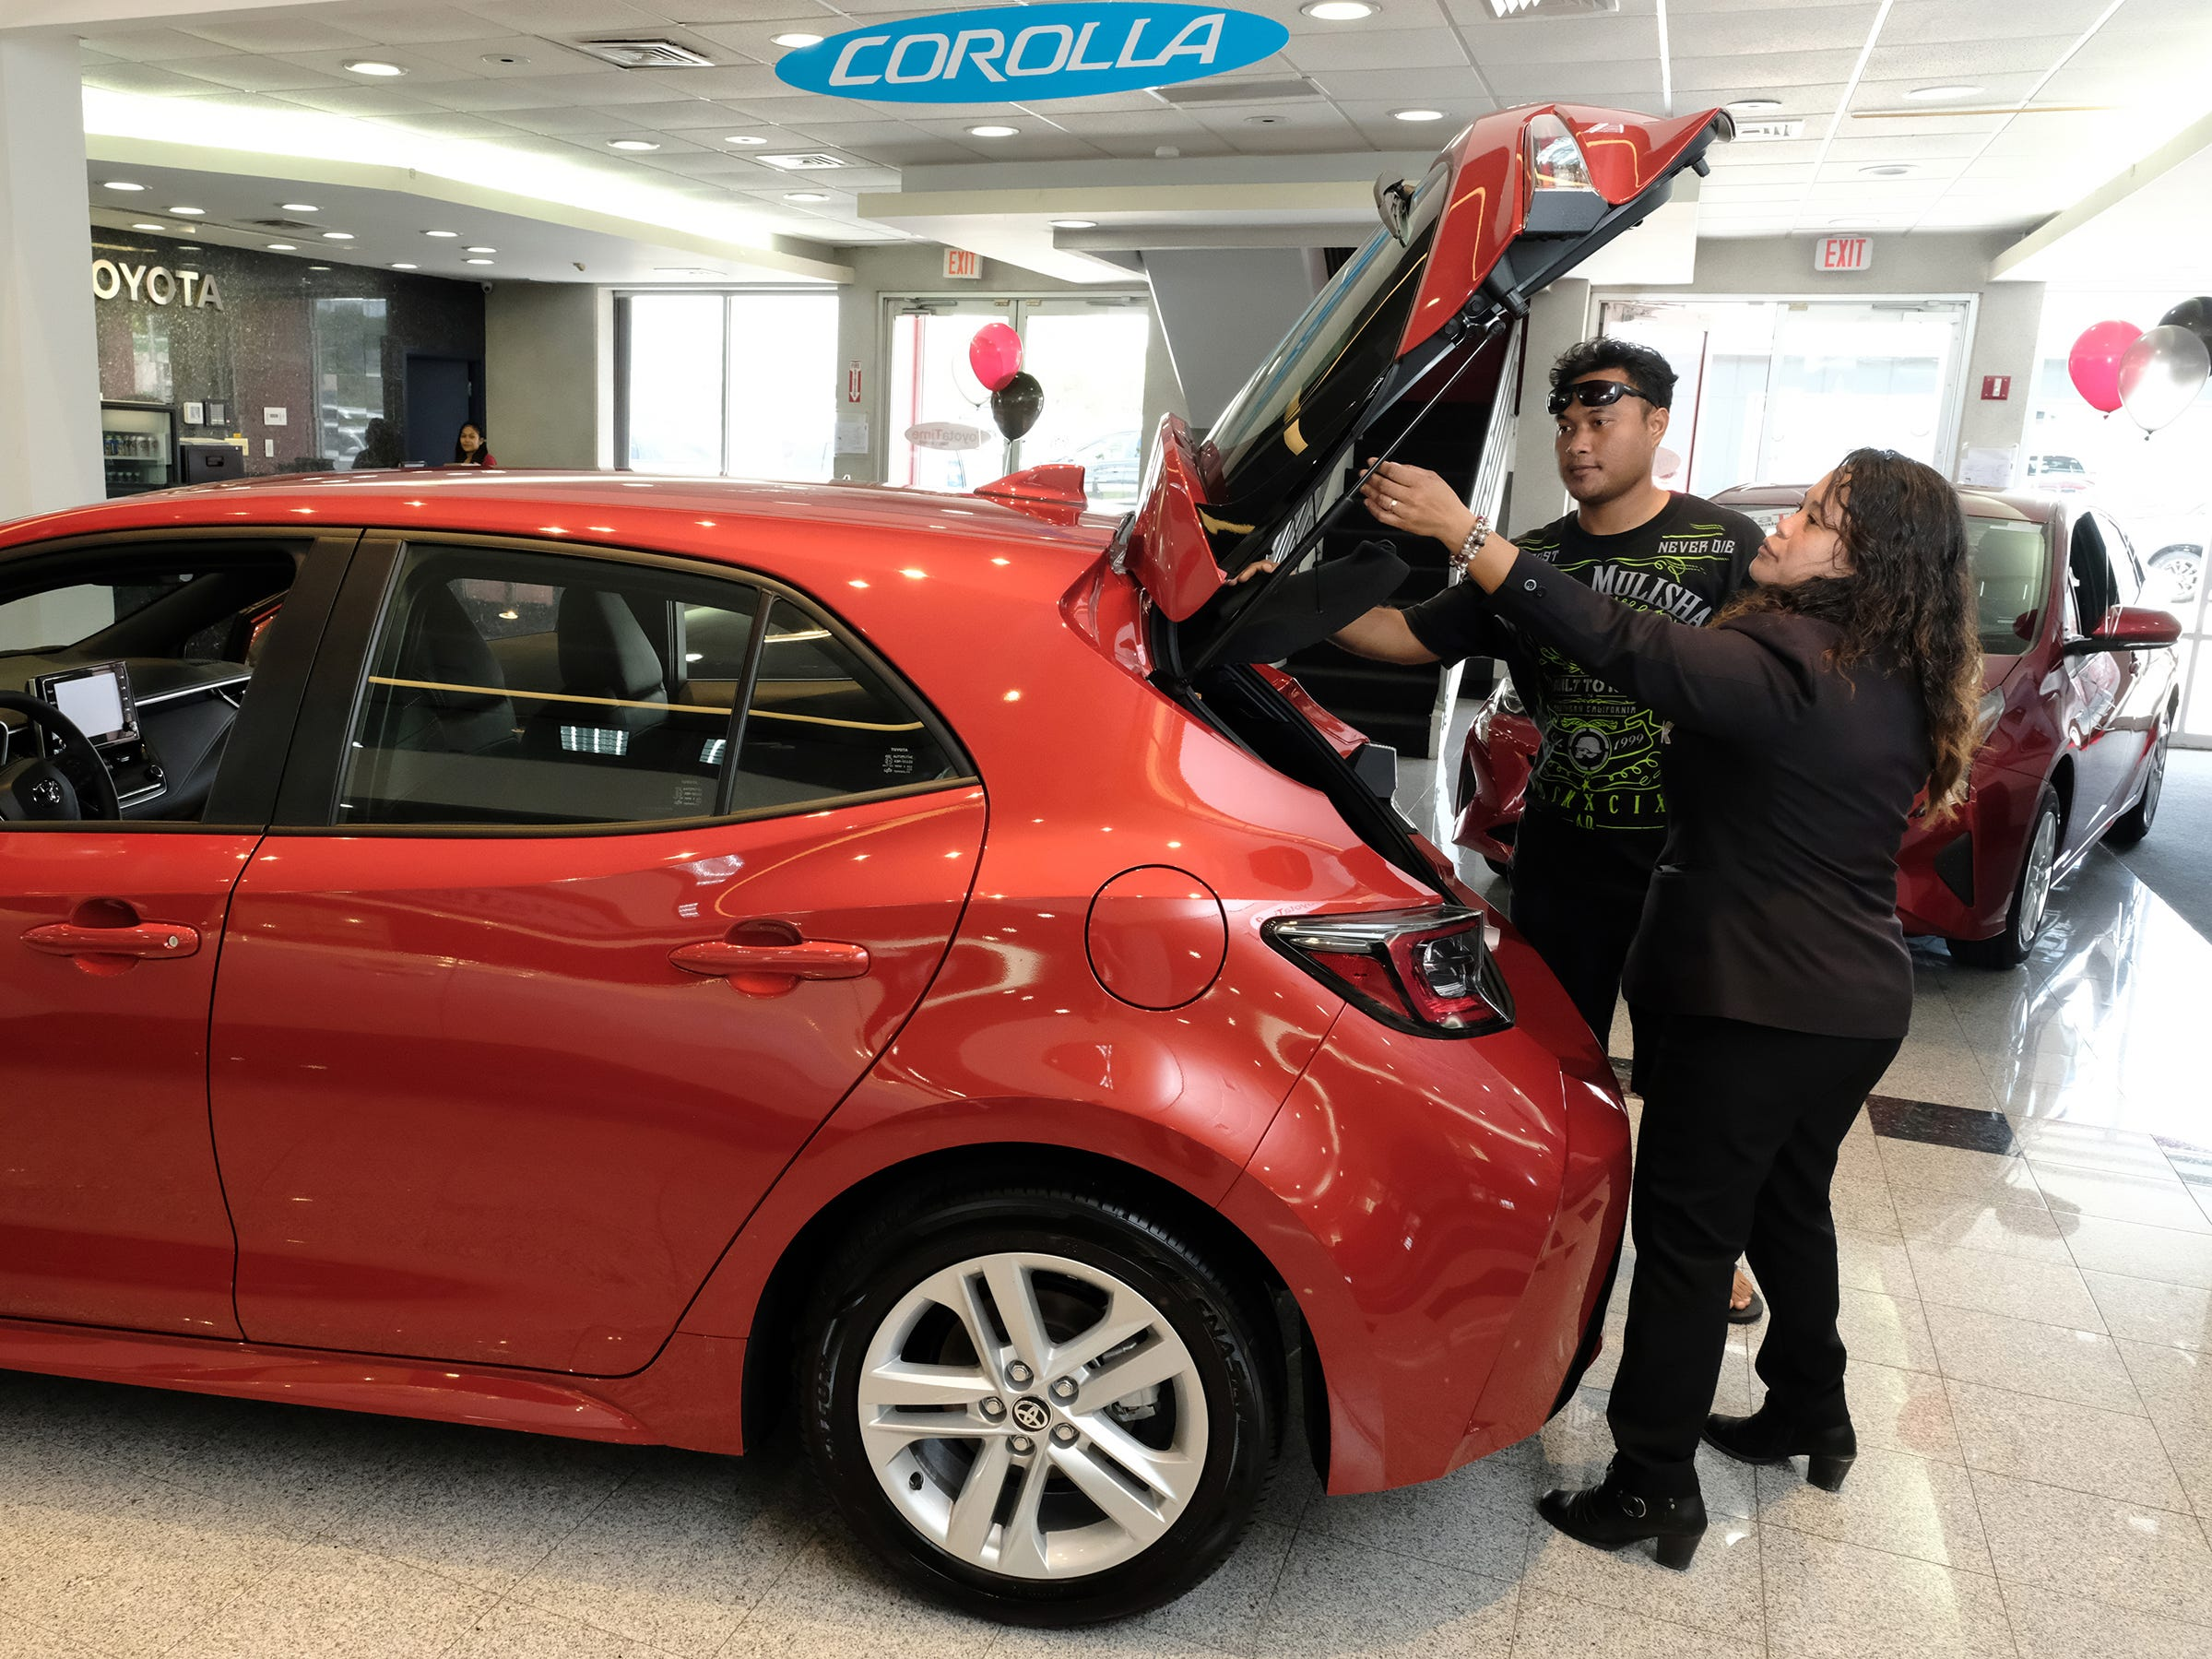 Atkins Kroll Toyota sale associate Mona Cing shows the 2019 Toyota Corolla hatchback to Andrew Milfith of Tamuning in the showroom Sept. 8, 2018.